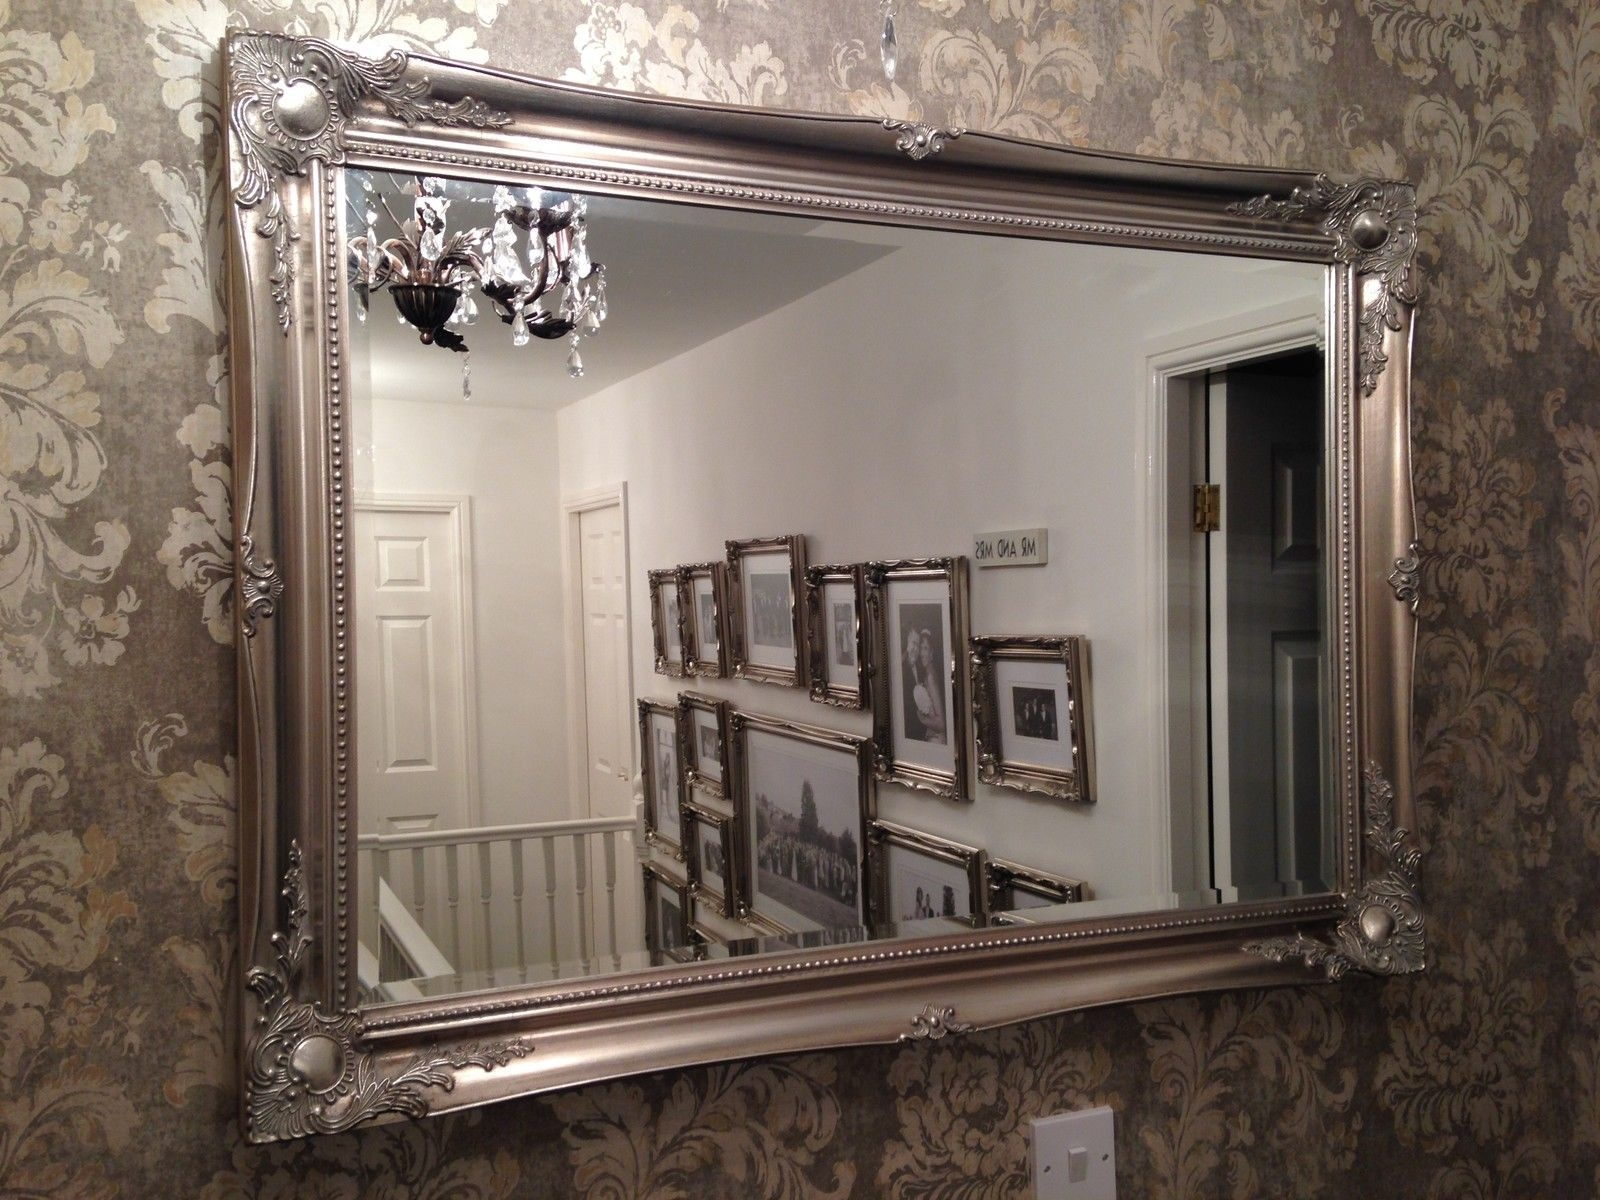 For Sale 20 Large Designer Wall Mirrors On Mirrors Decorative Inside Large Antique Mirrors For Sale (Image 9 of 15)